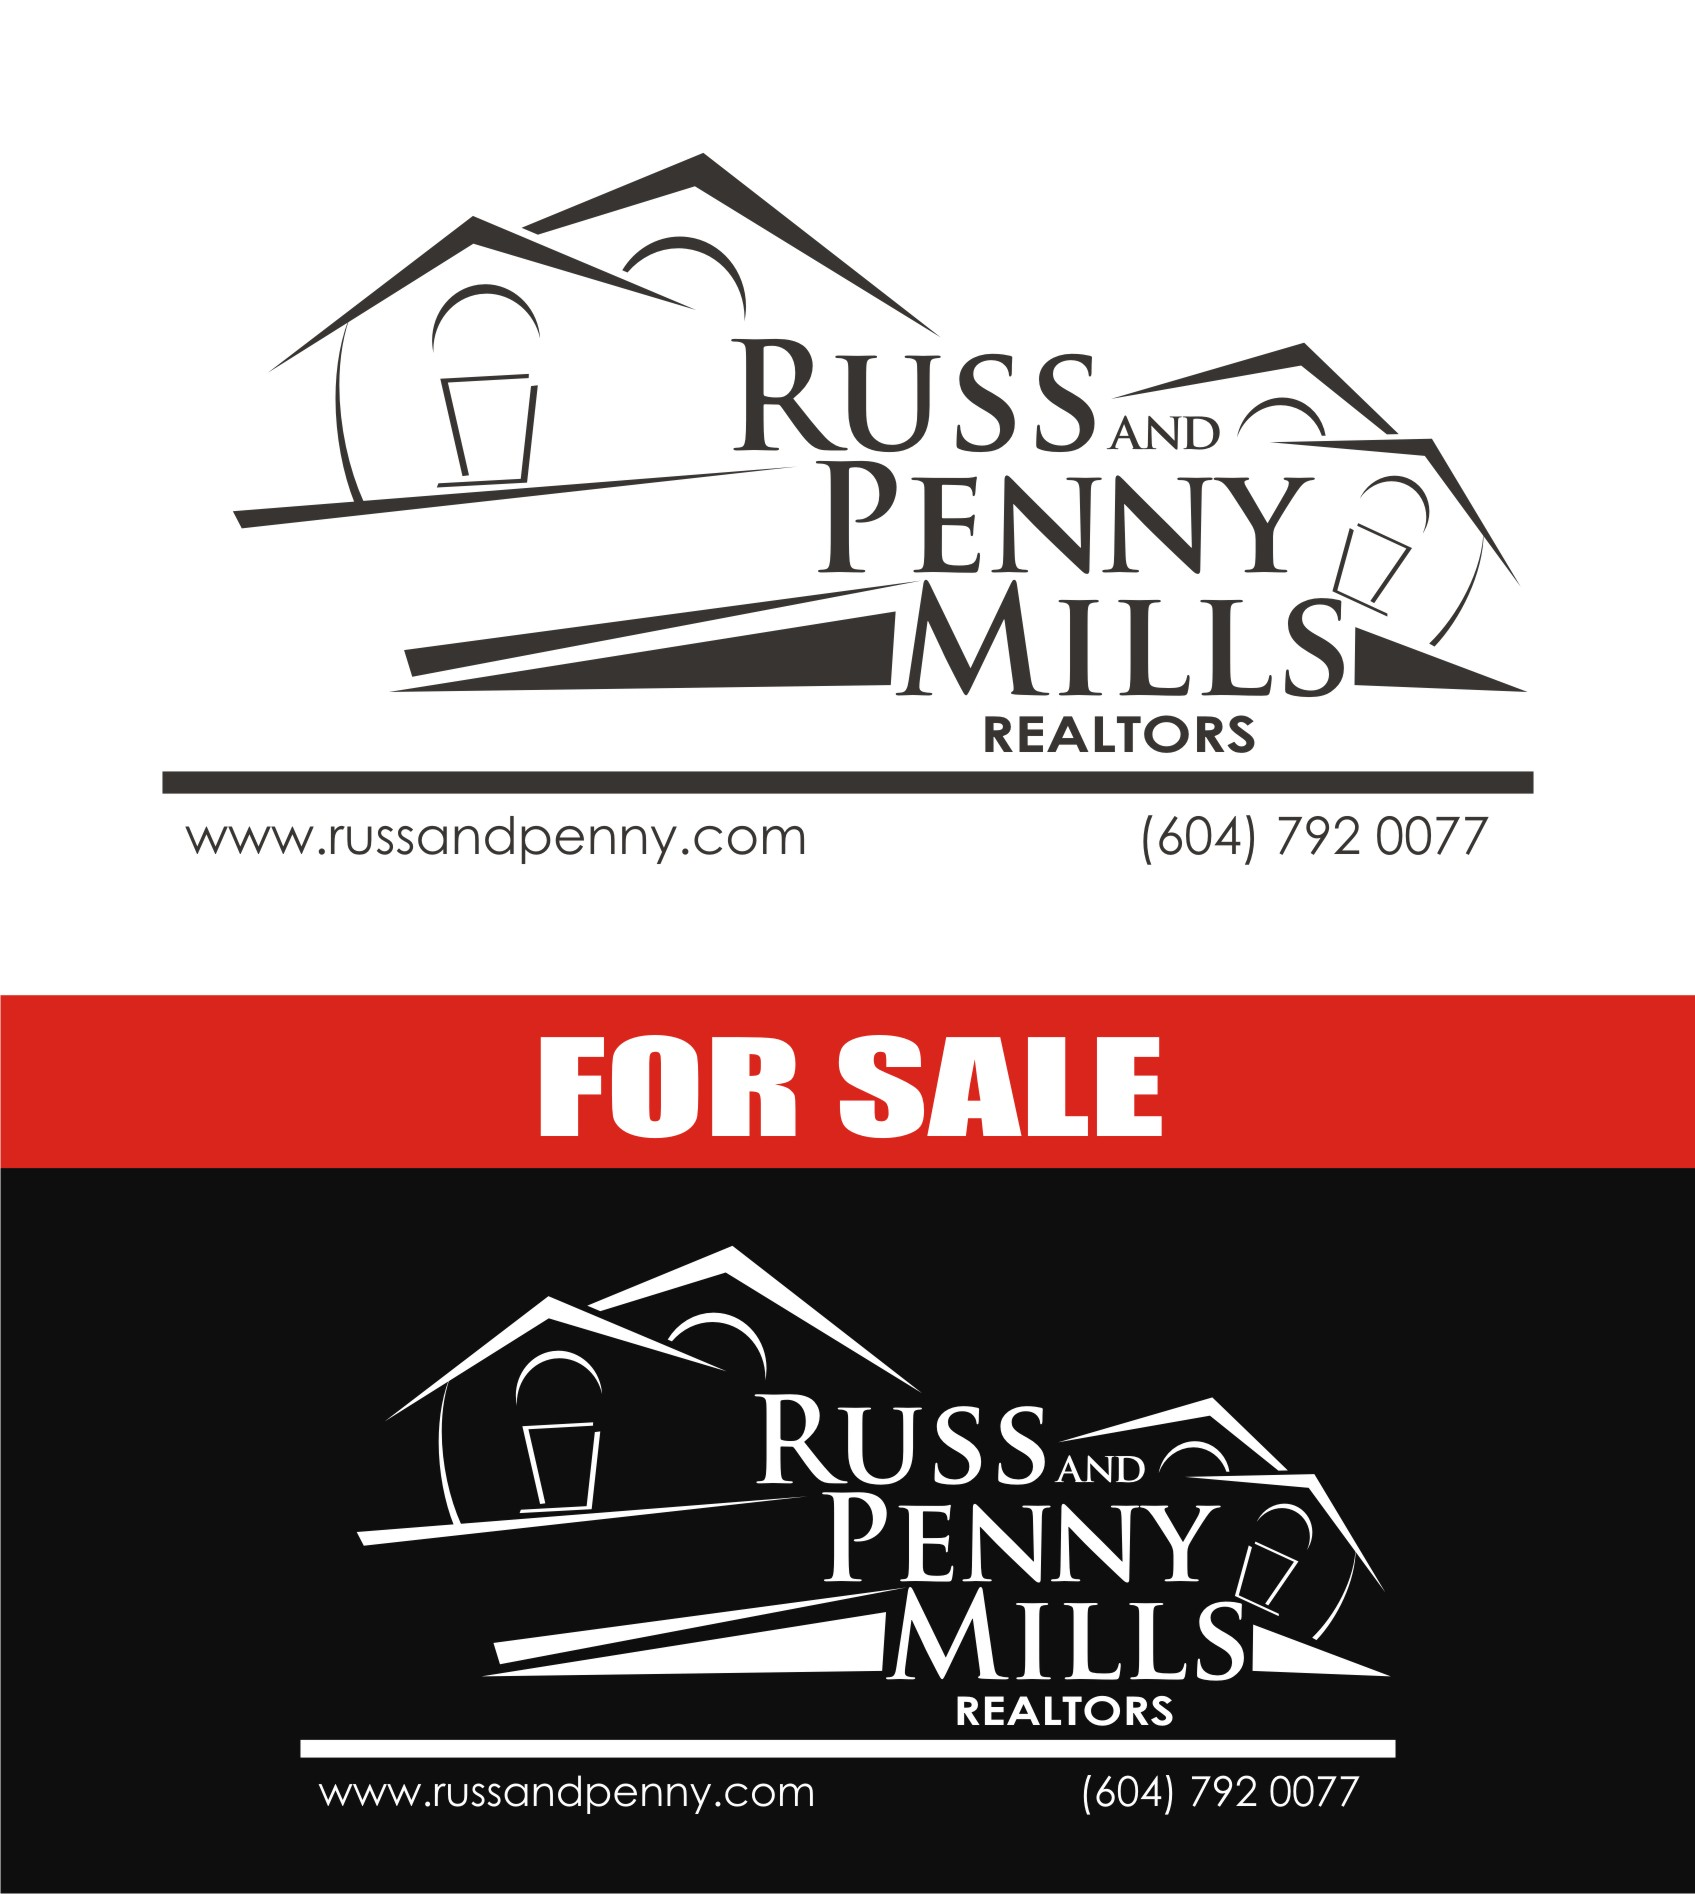 Custom Design by Private User - Entry No. 56 in the Custom Design Contest Fun Custom Design for Russ and Penny Mills (realtors).